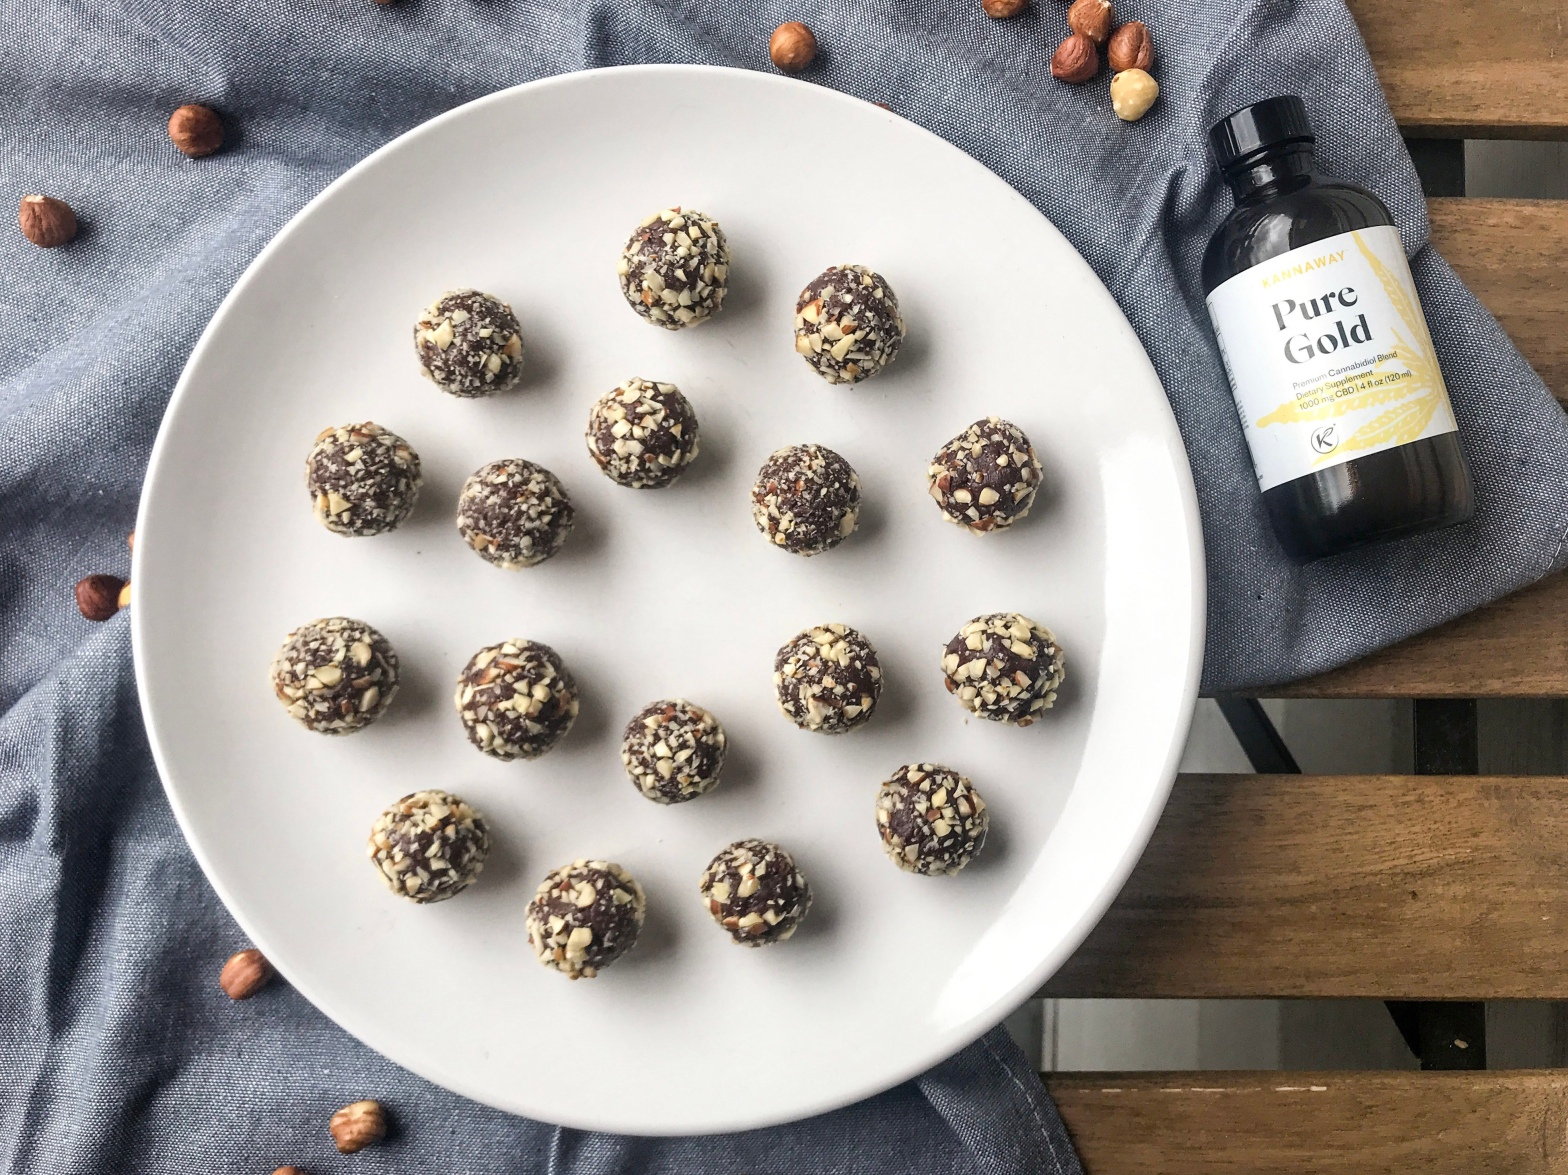 chocolate hazelnut cbd dessert balls on a plate next to a bottle of kannaway pure gold cbd oil